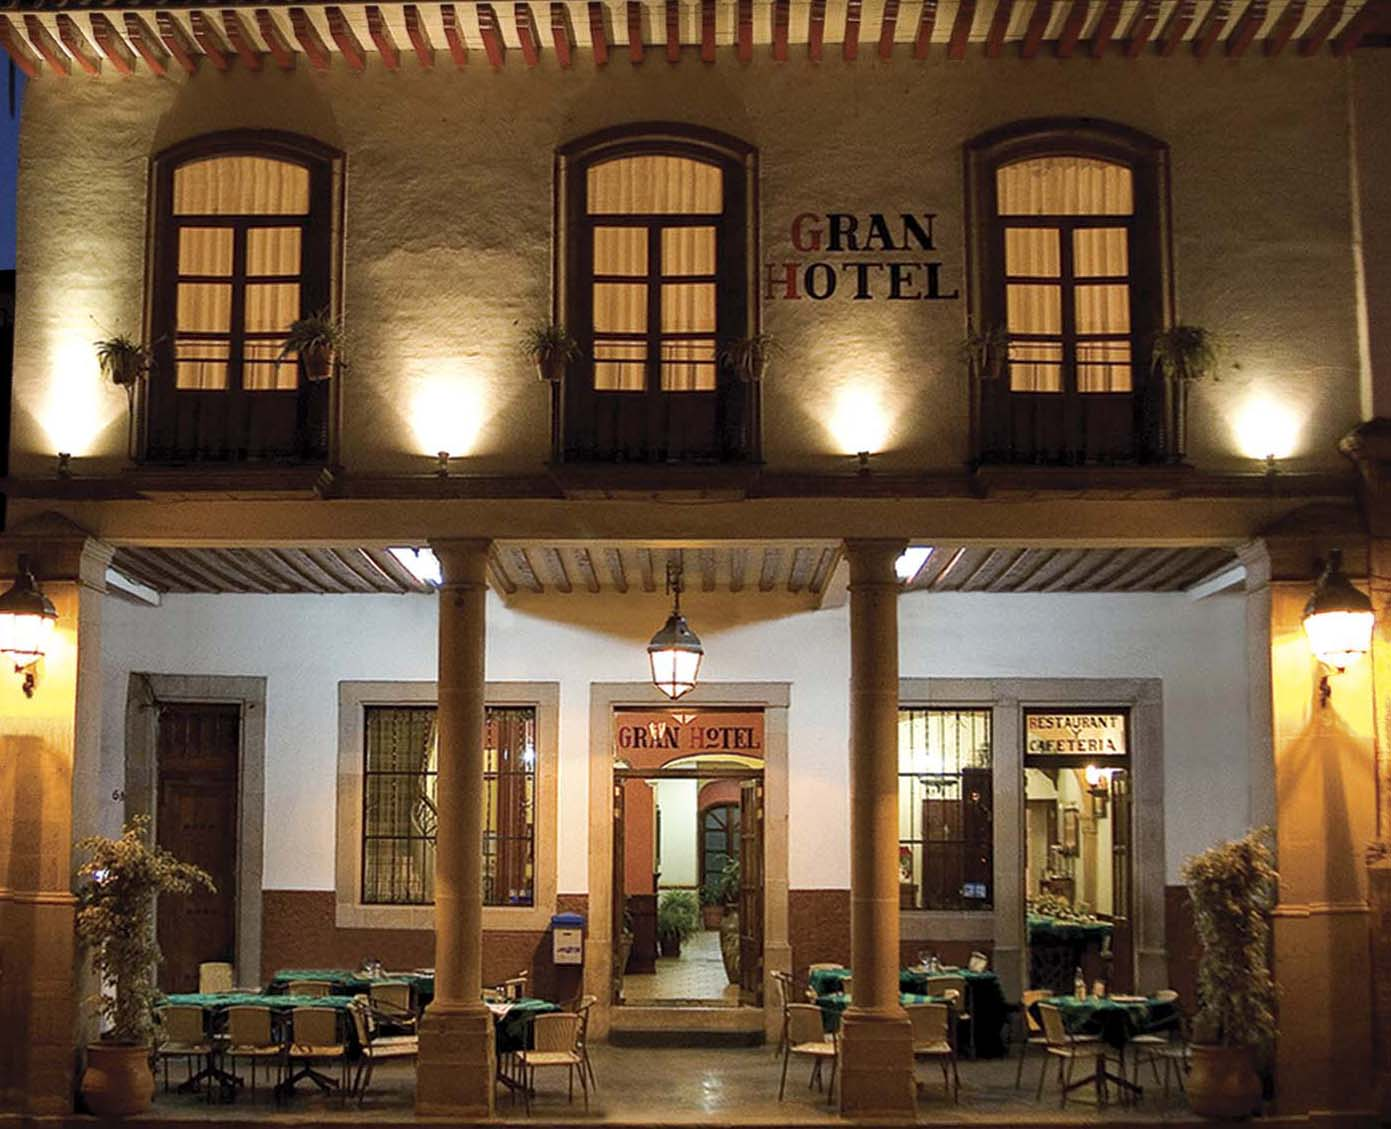 Gran hotel patzcuaro michoacan quaint hotel architecture for Quaint hotel